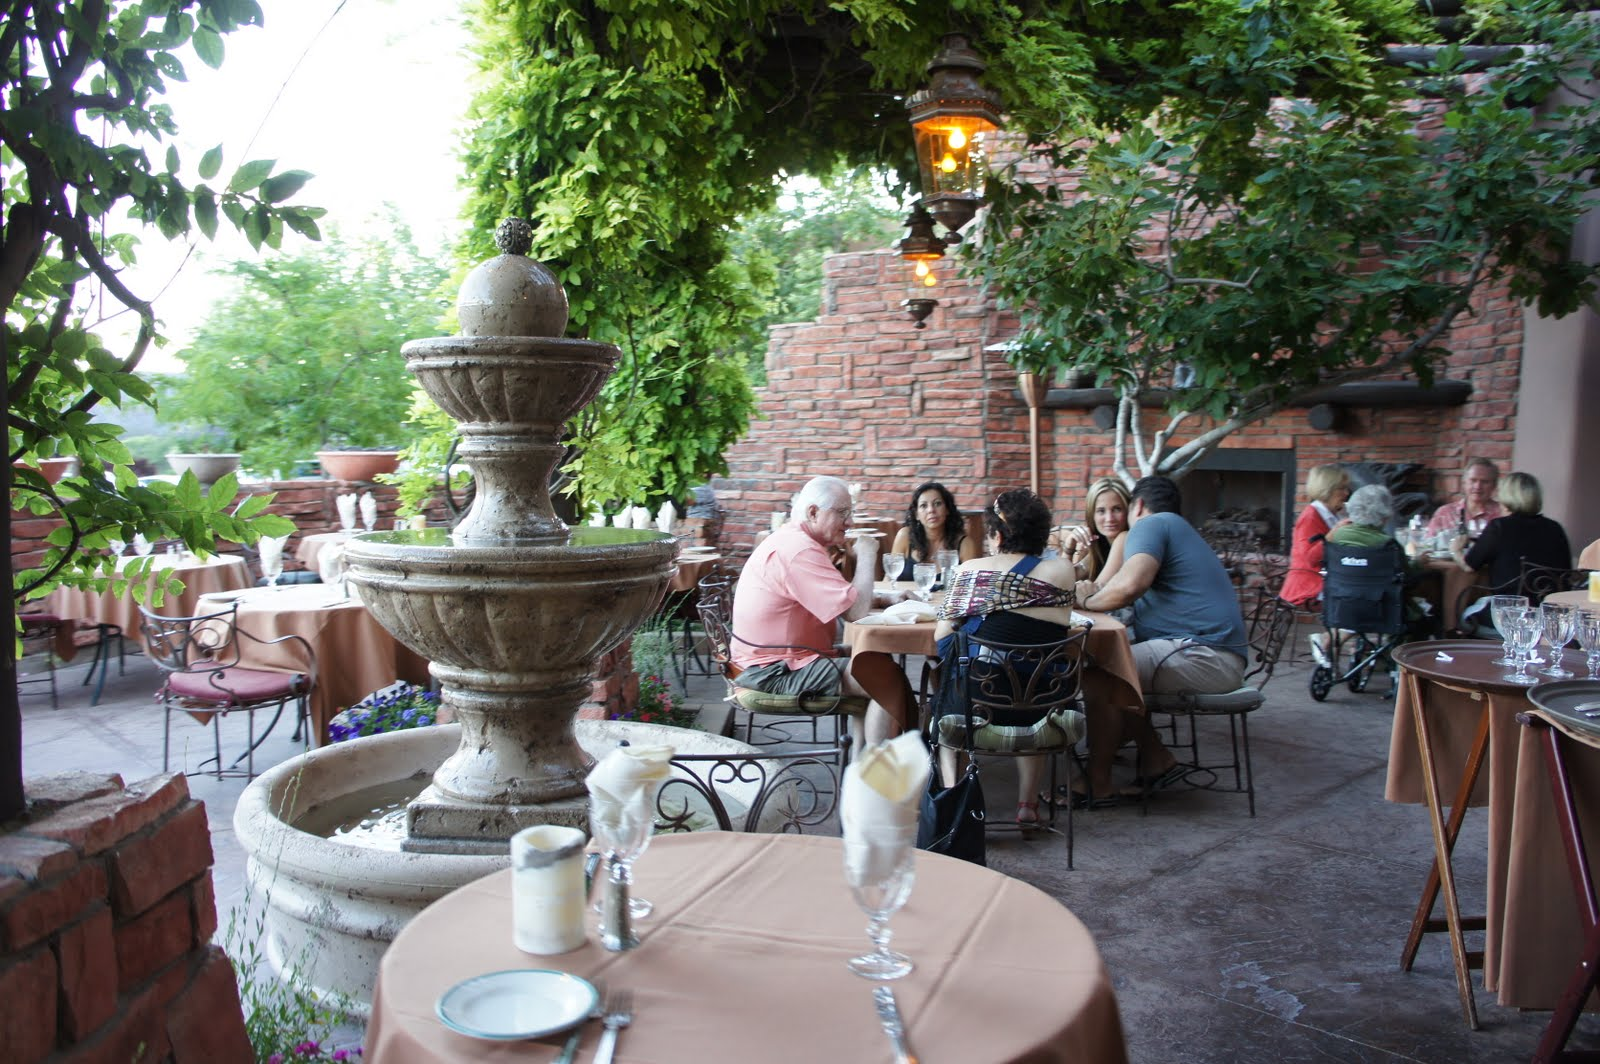 Cucina Restaurant Sedona Az The Fashionably Forward Foodie Cucina Rustica Dahl Di Luca